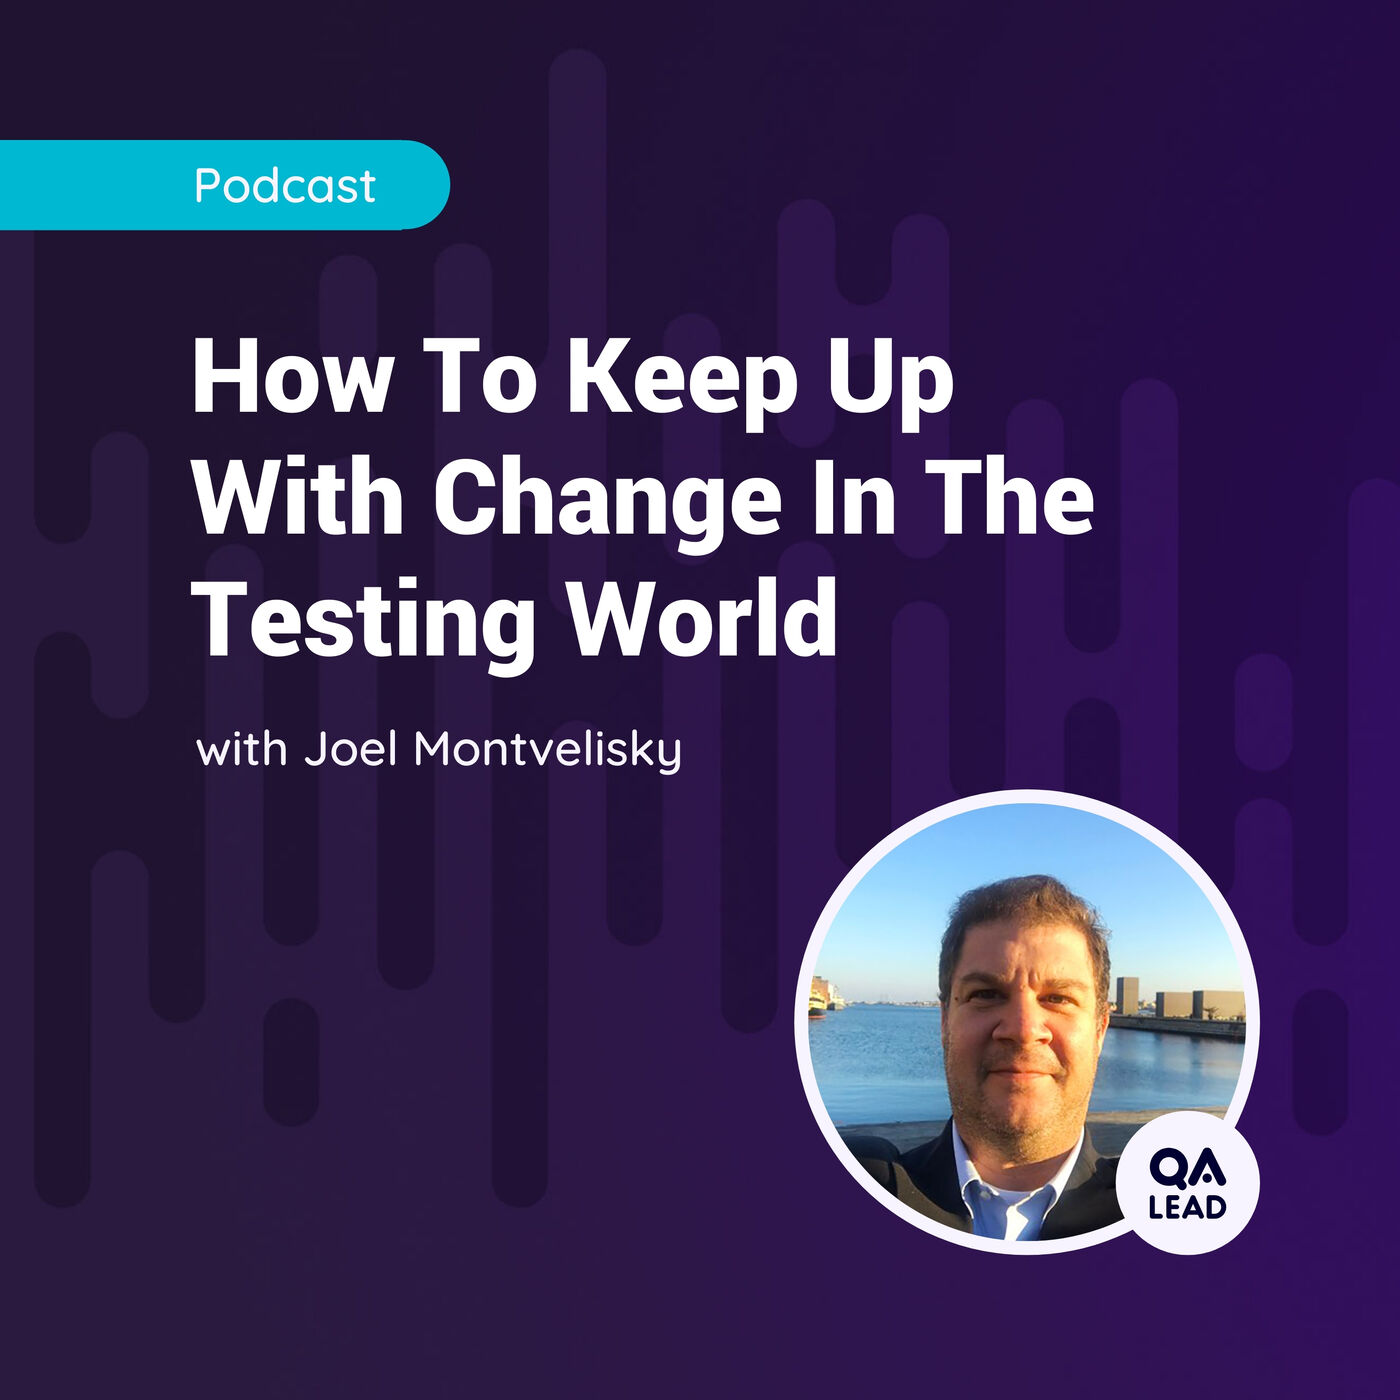 How To Keep Up With Change In The Testing World (with Joel Montvelisky from PractiTest)